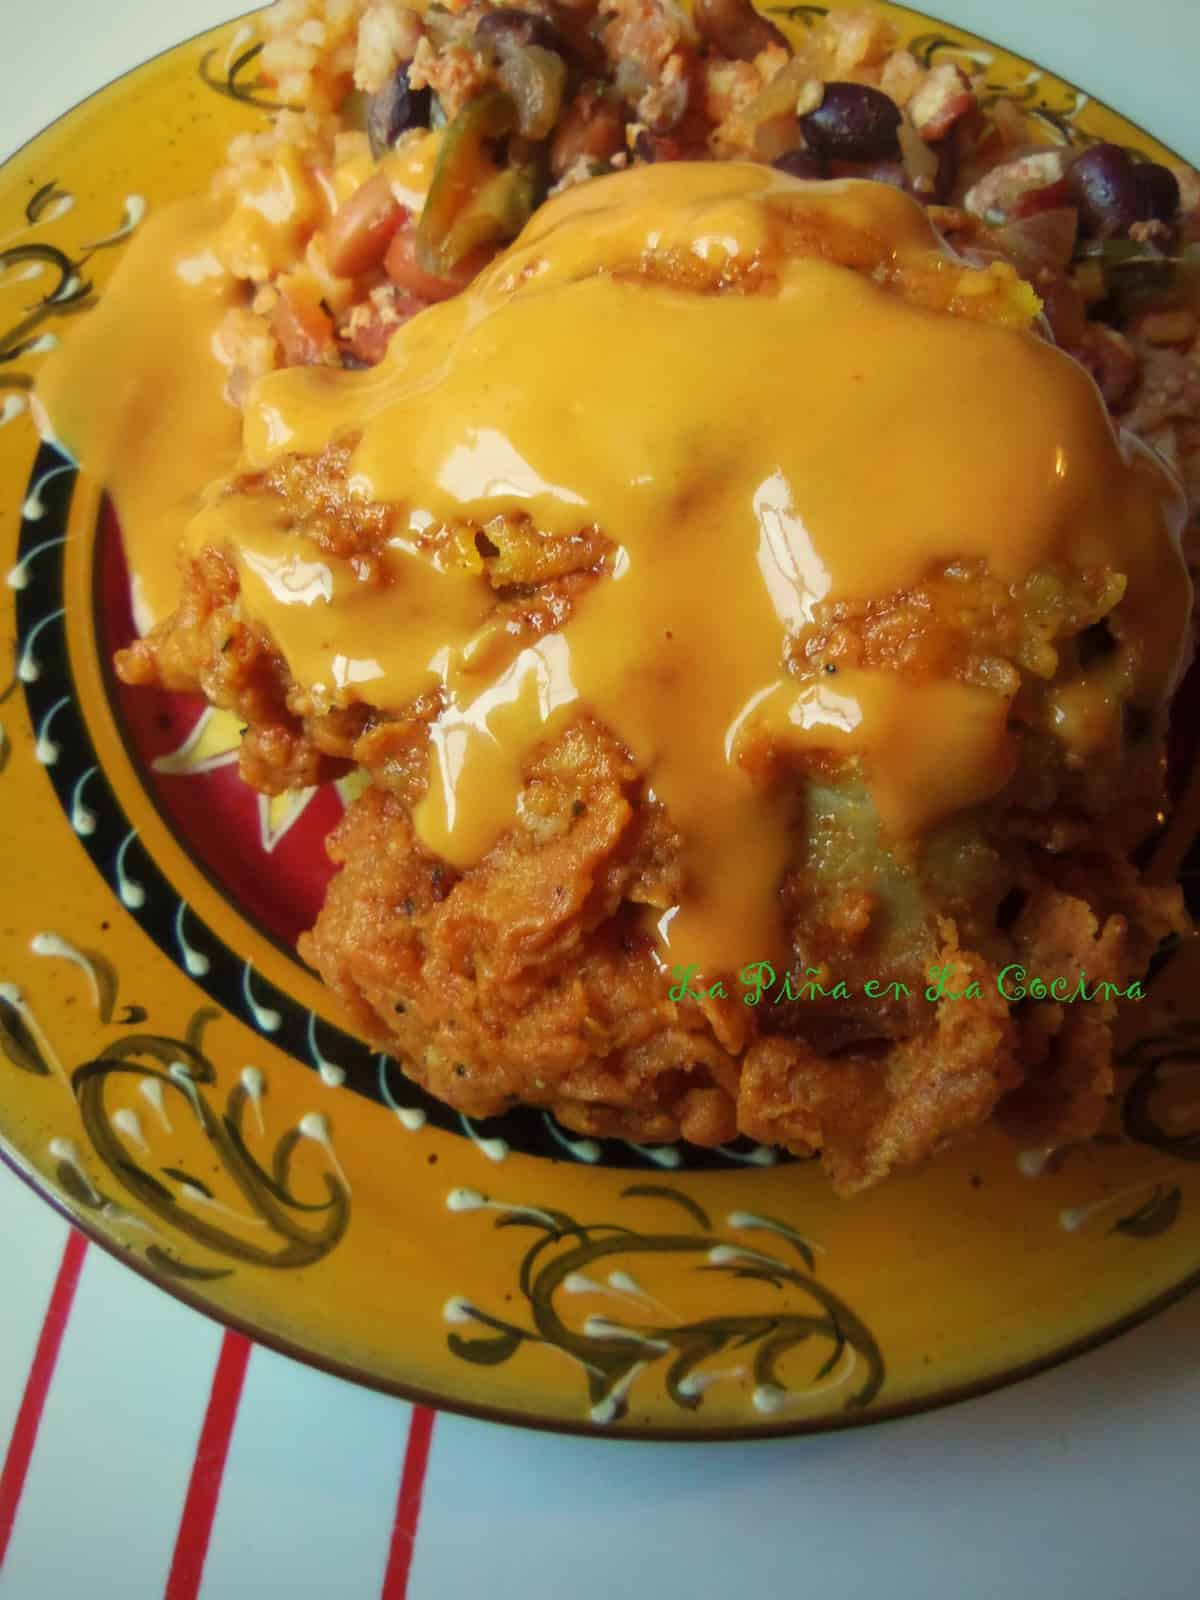 Extra Crispy Fried Chicken with a Spicy Honey Mustard Sauce